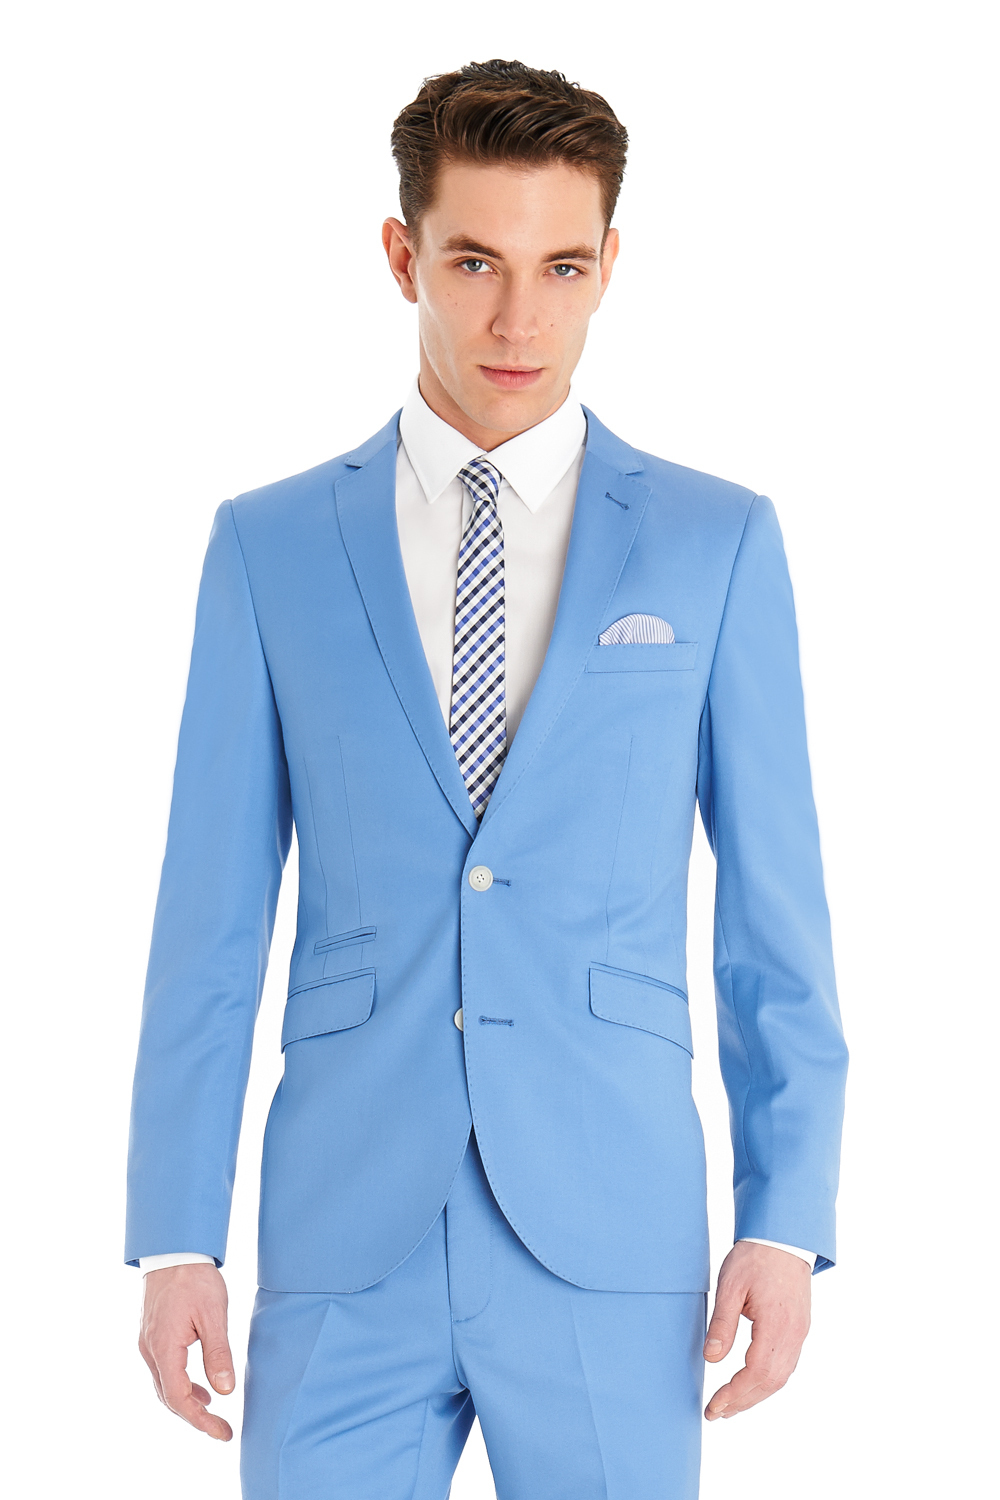 Light Blue Men Suits Slim Custom Fit Fashion Suit Blazer With ...